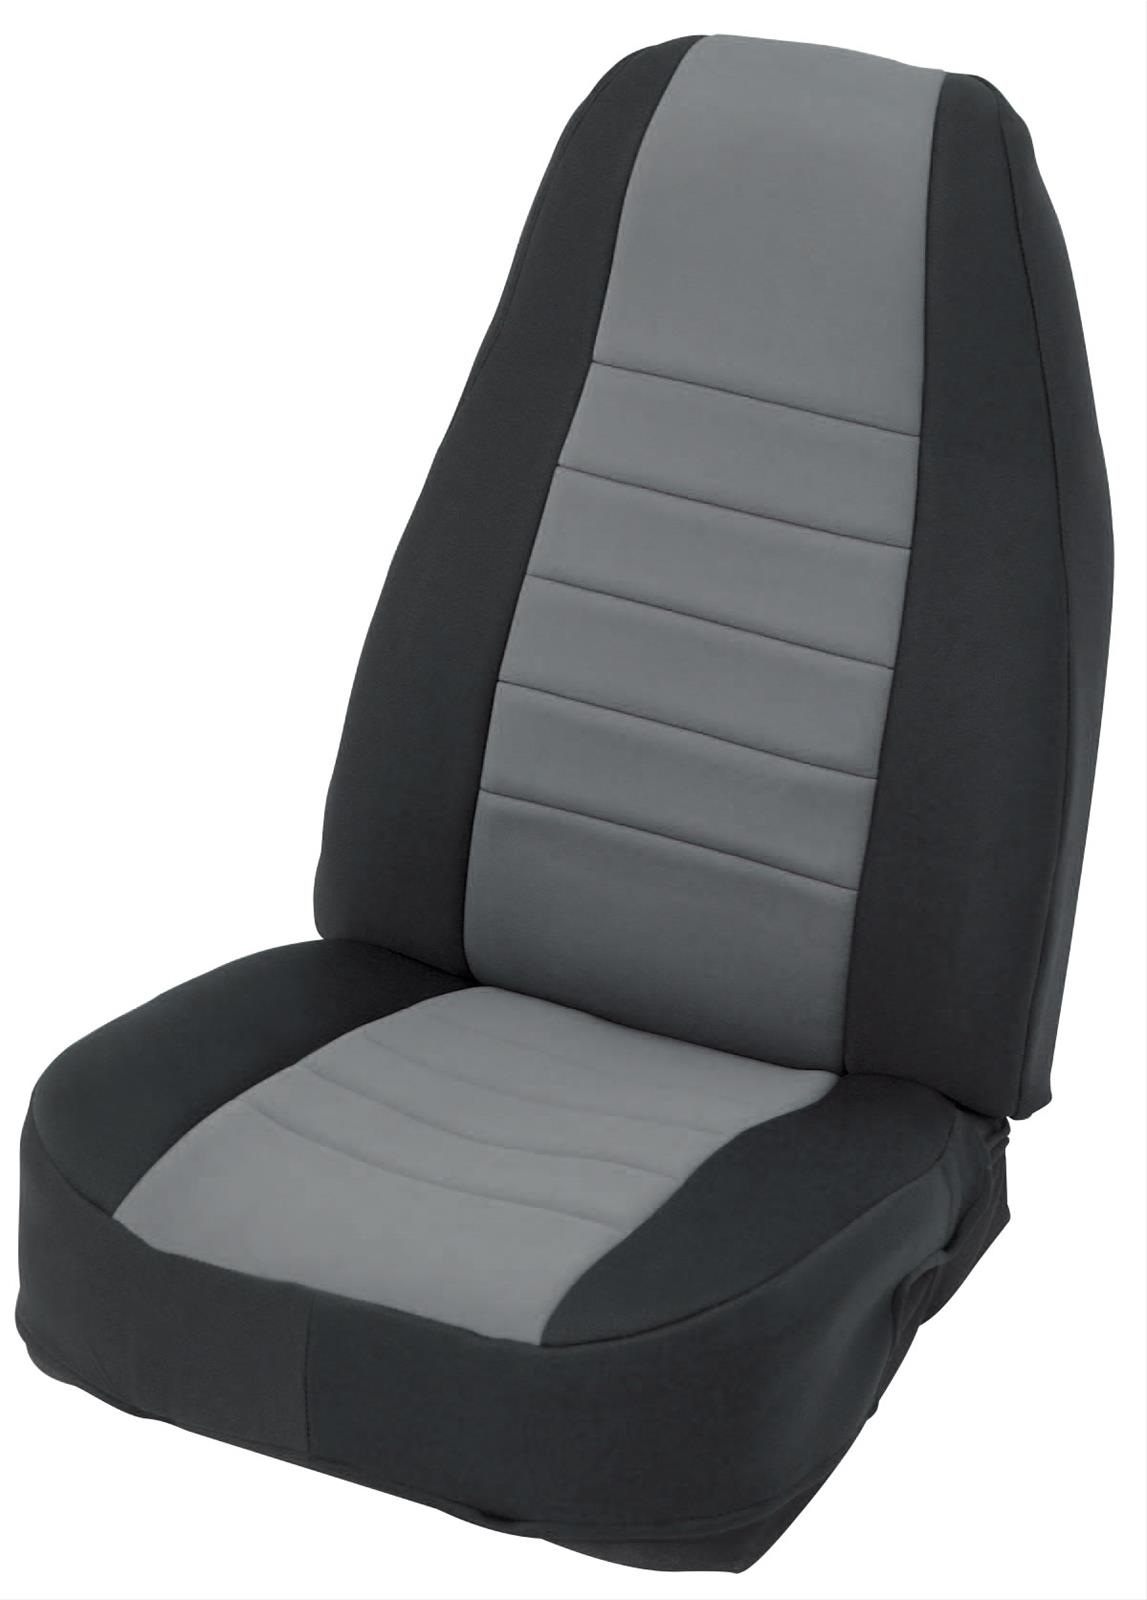 Astonishing Smittybilt Neoprene Seat Cover Sets 471322 Pdpeps Interior Chair Design Pdpepsorg